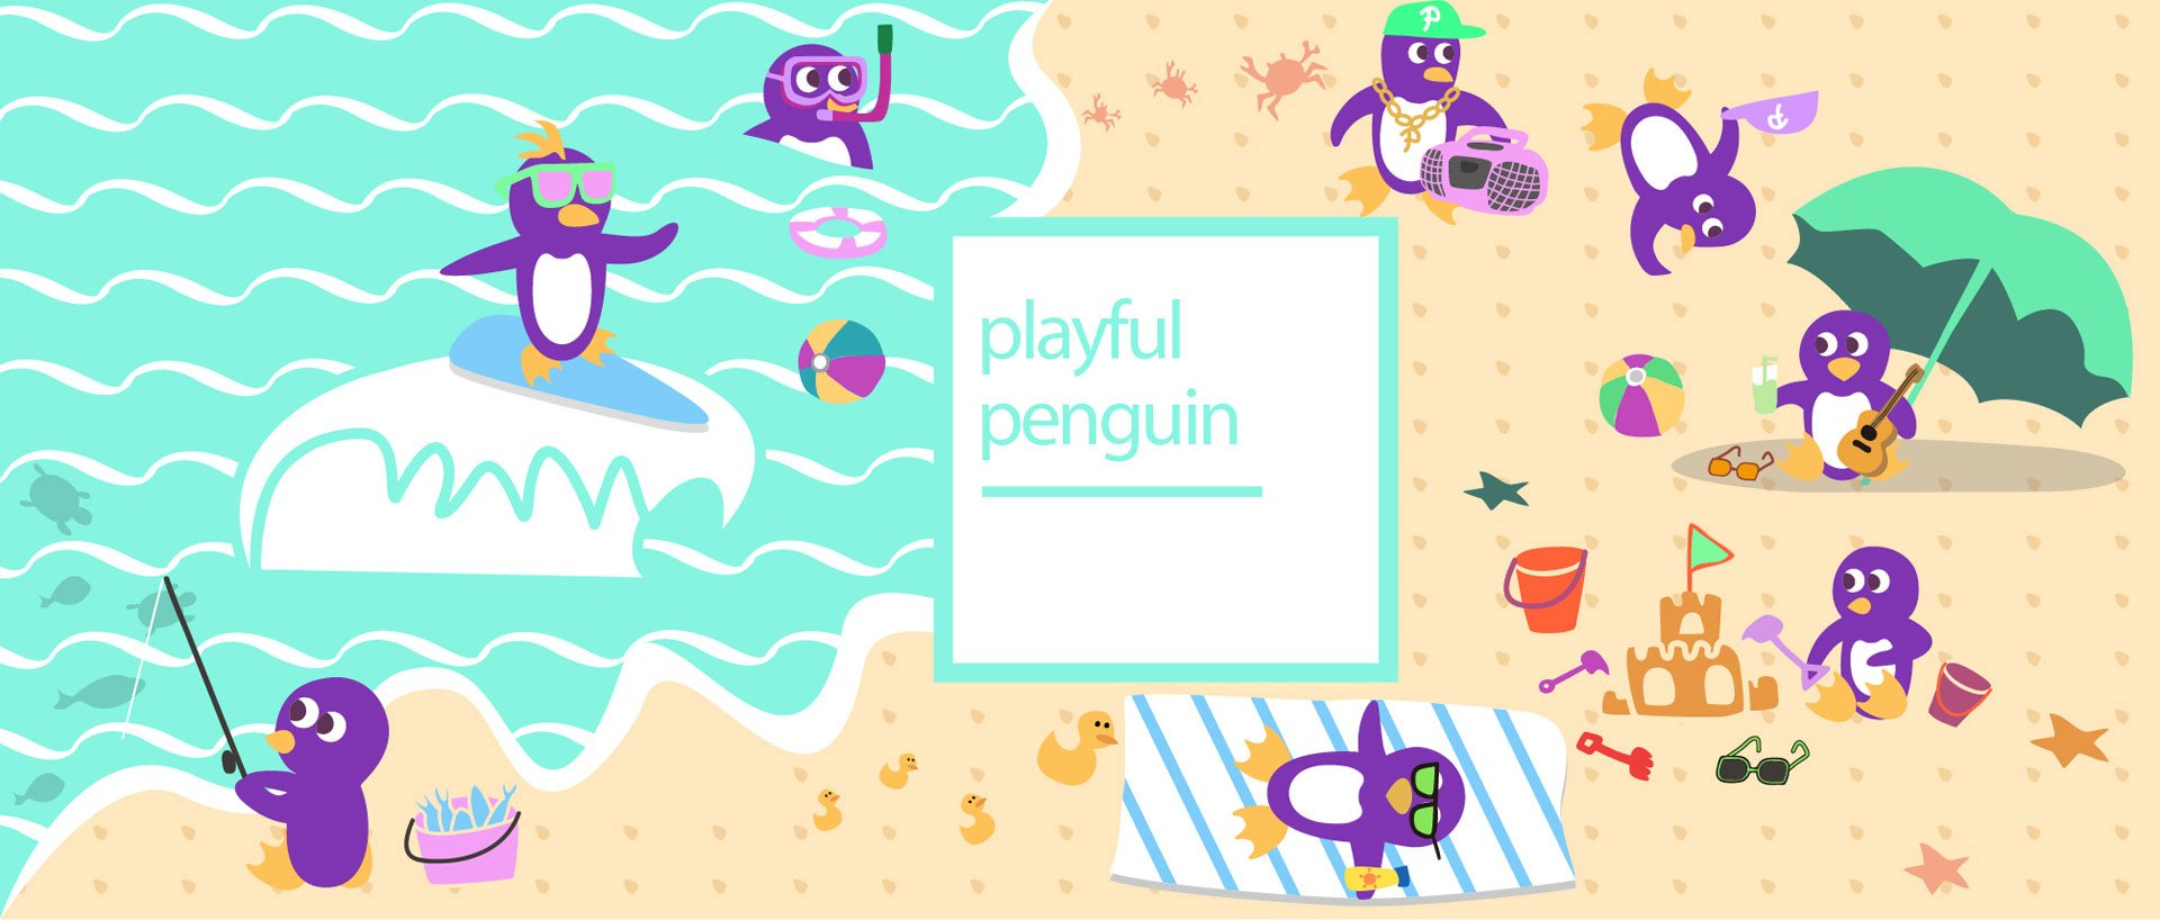 Playful Penguin Toy Storage Box Fun Drawing